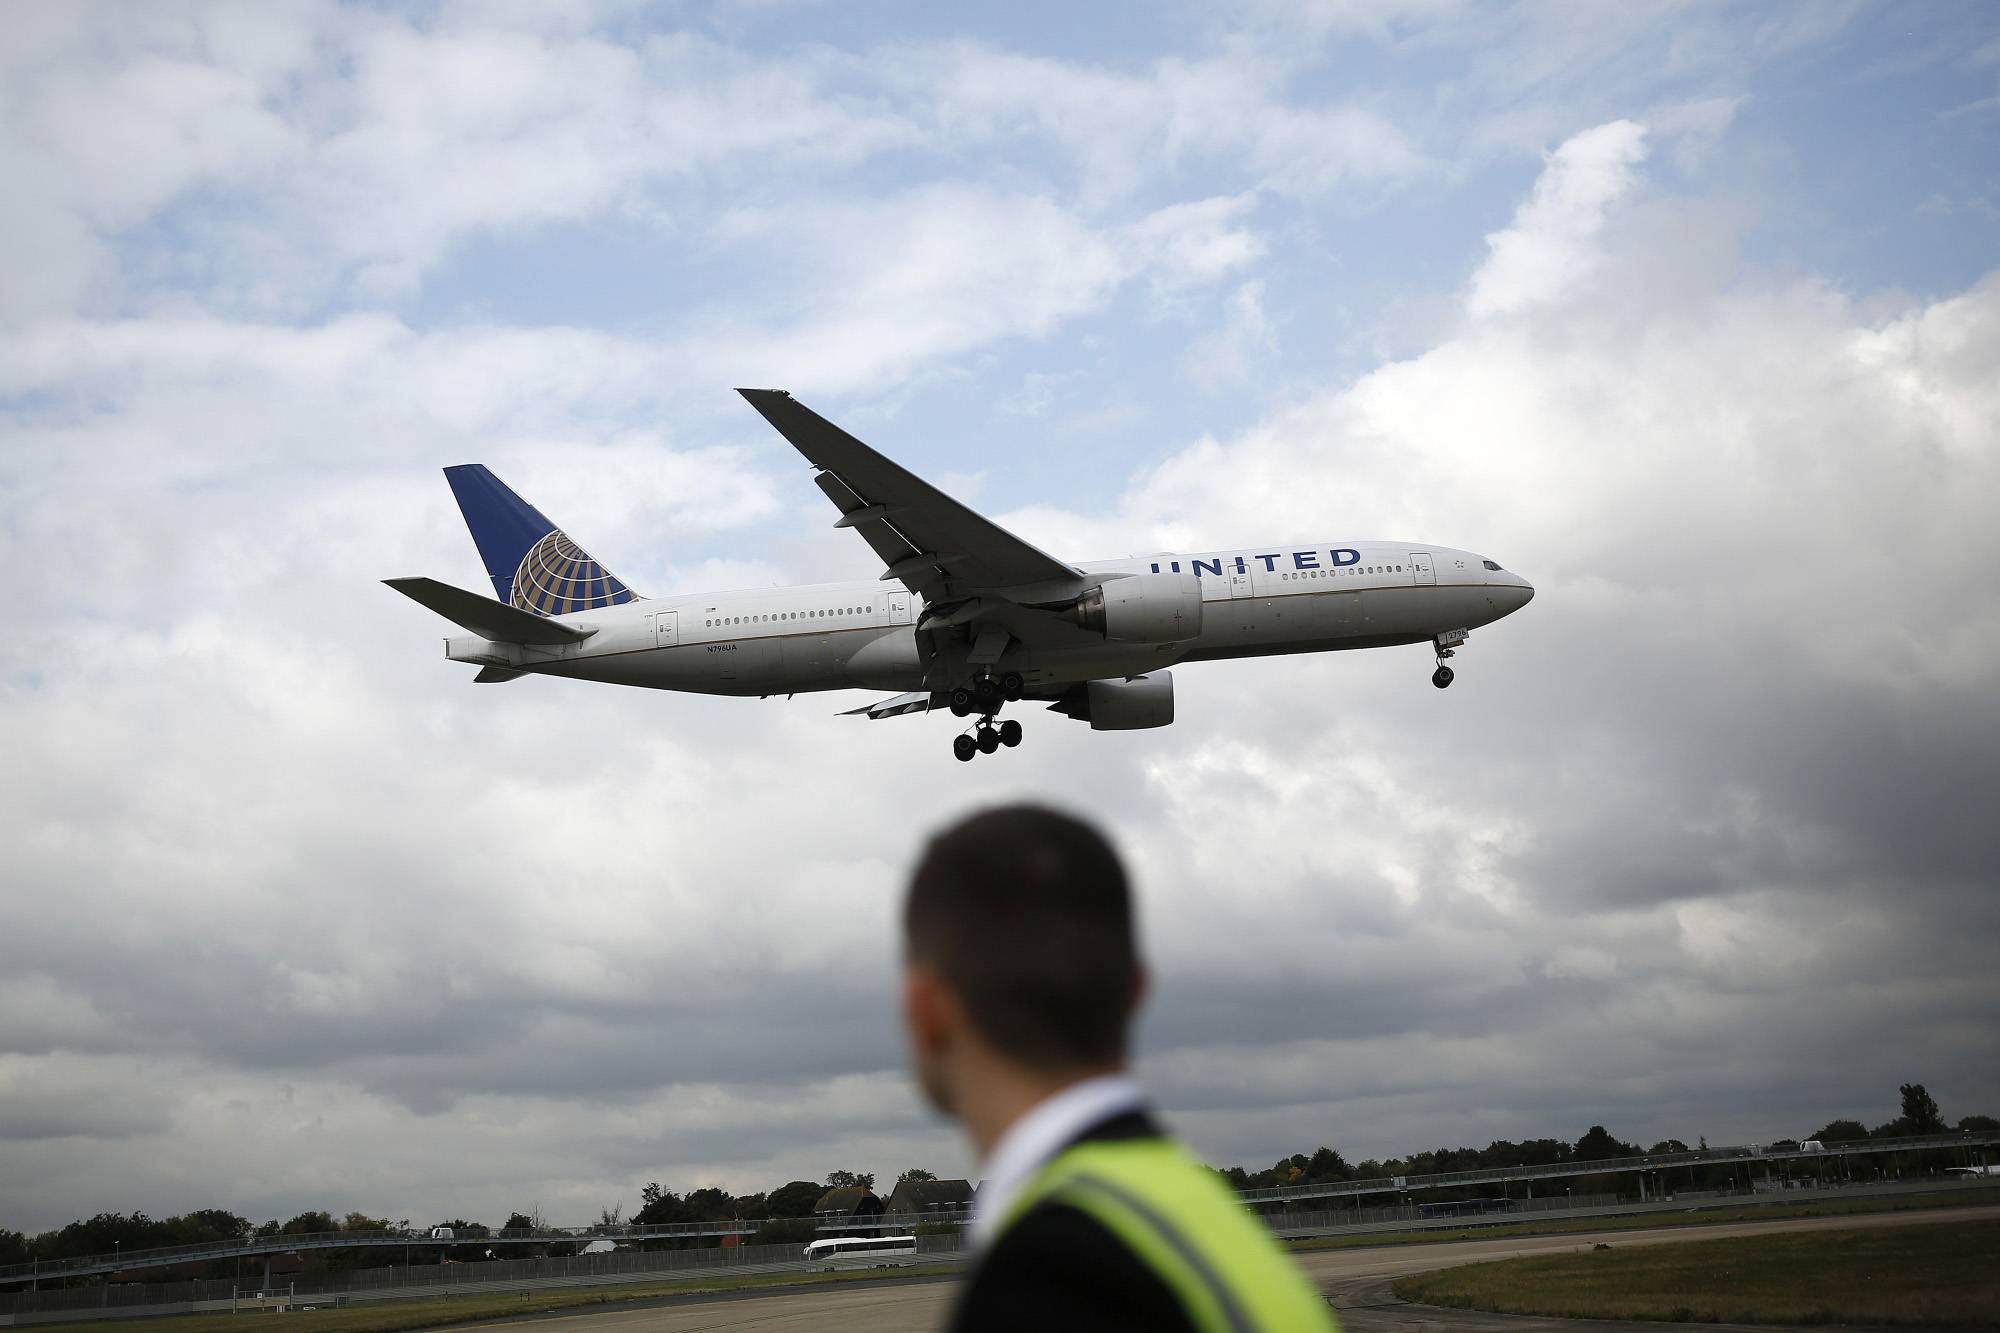 Chicago-based United Airlines is revamping some of its regional jets to add more first-class seats and amenities as part of a wider push to attract more business travelers.